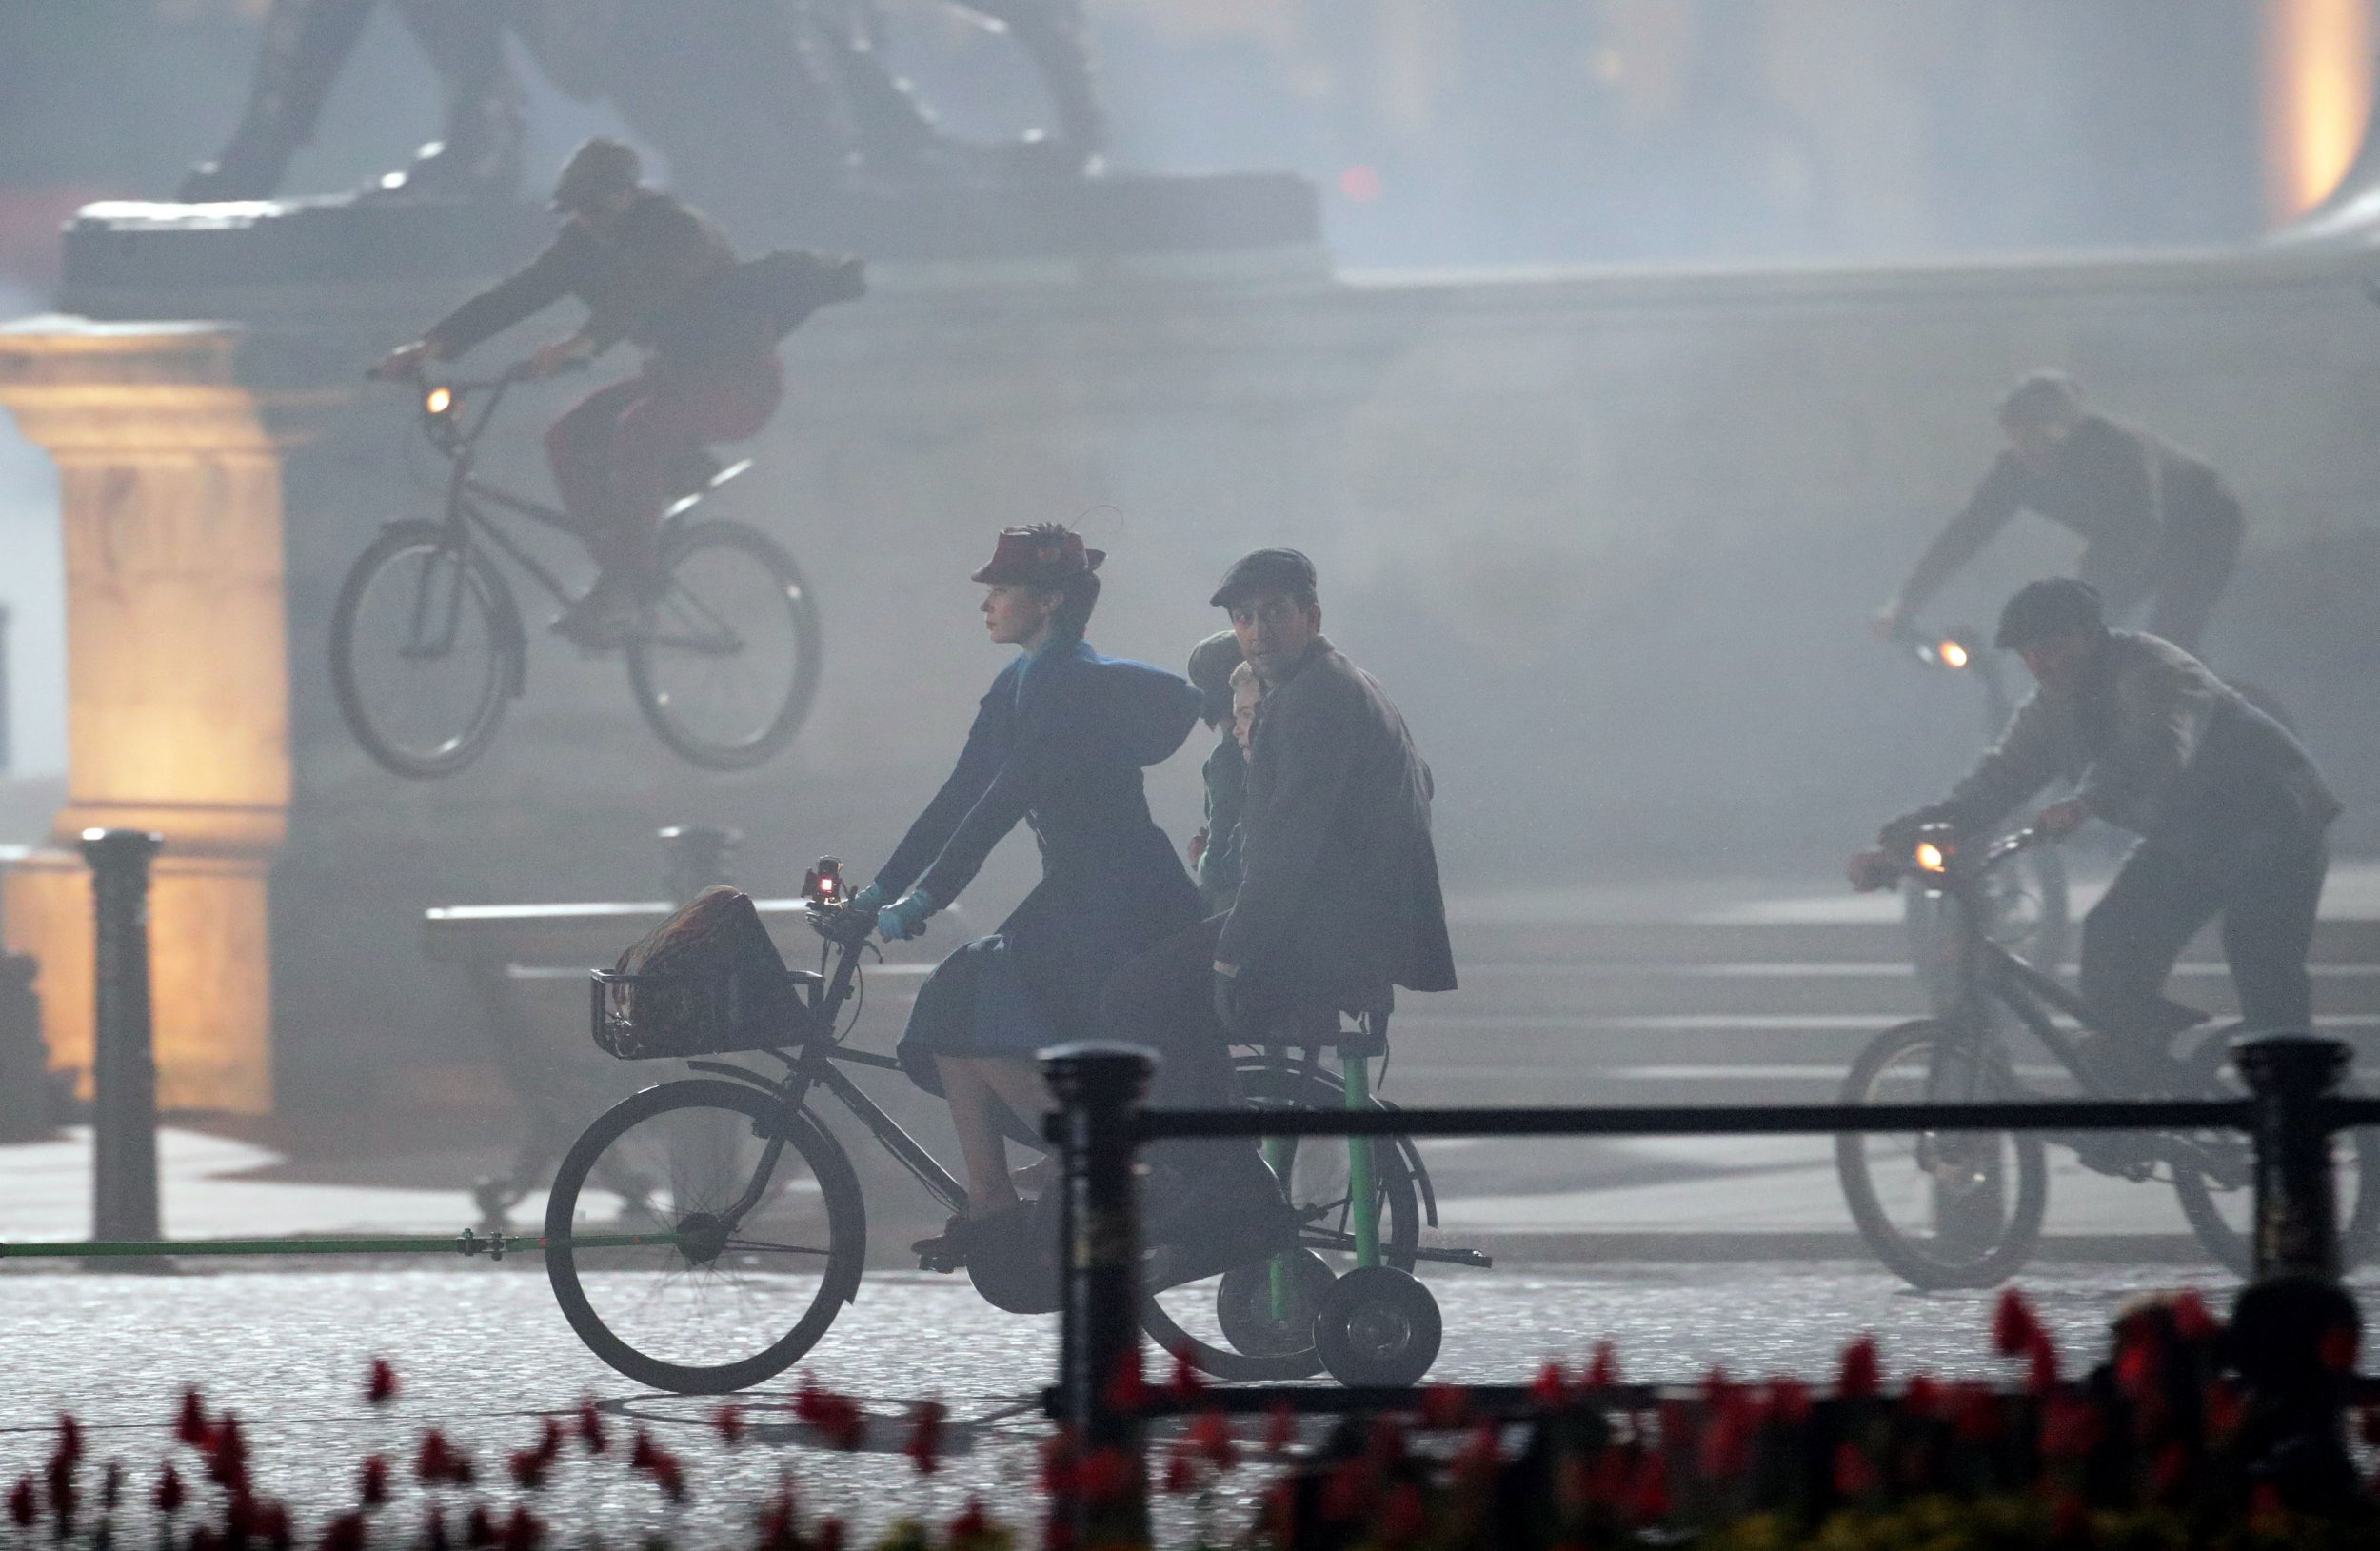 Emily Blunt films Mary Poppins Returns in front of Buckingham Palace complete with flying bicycles